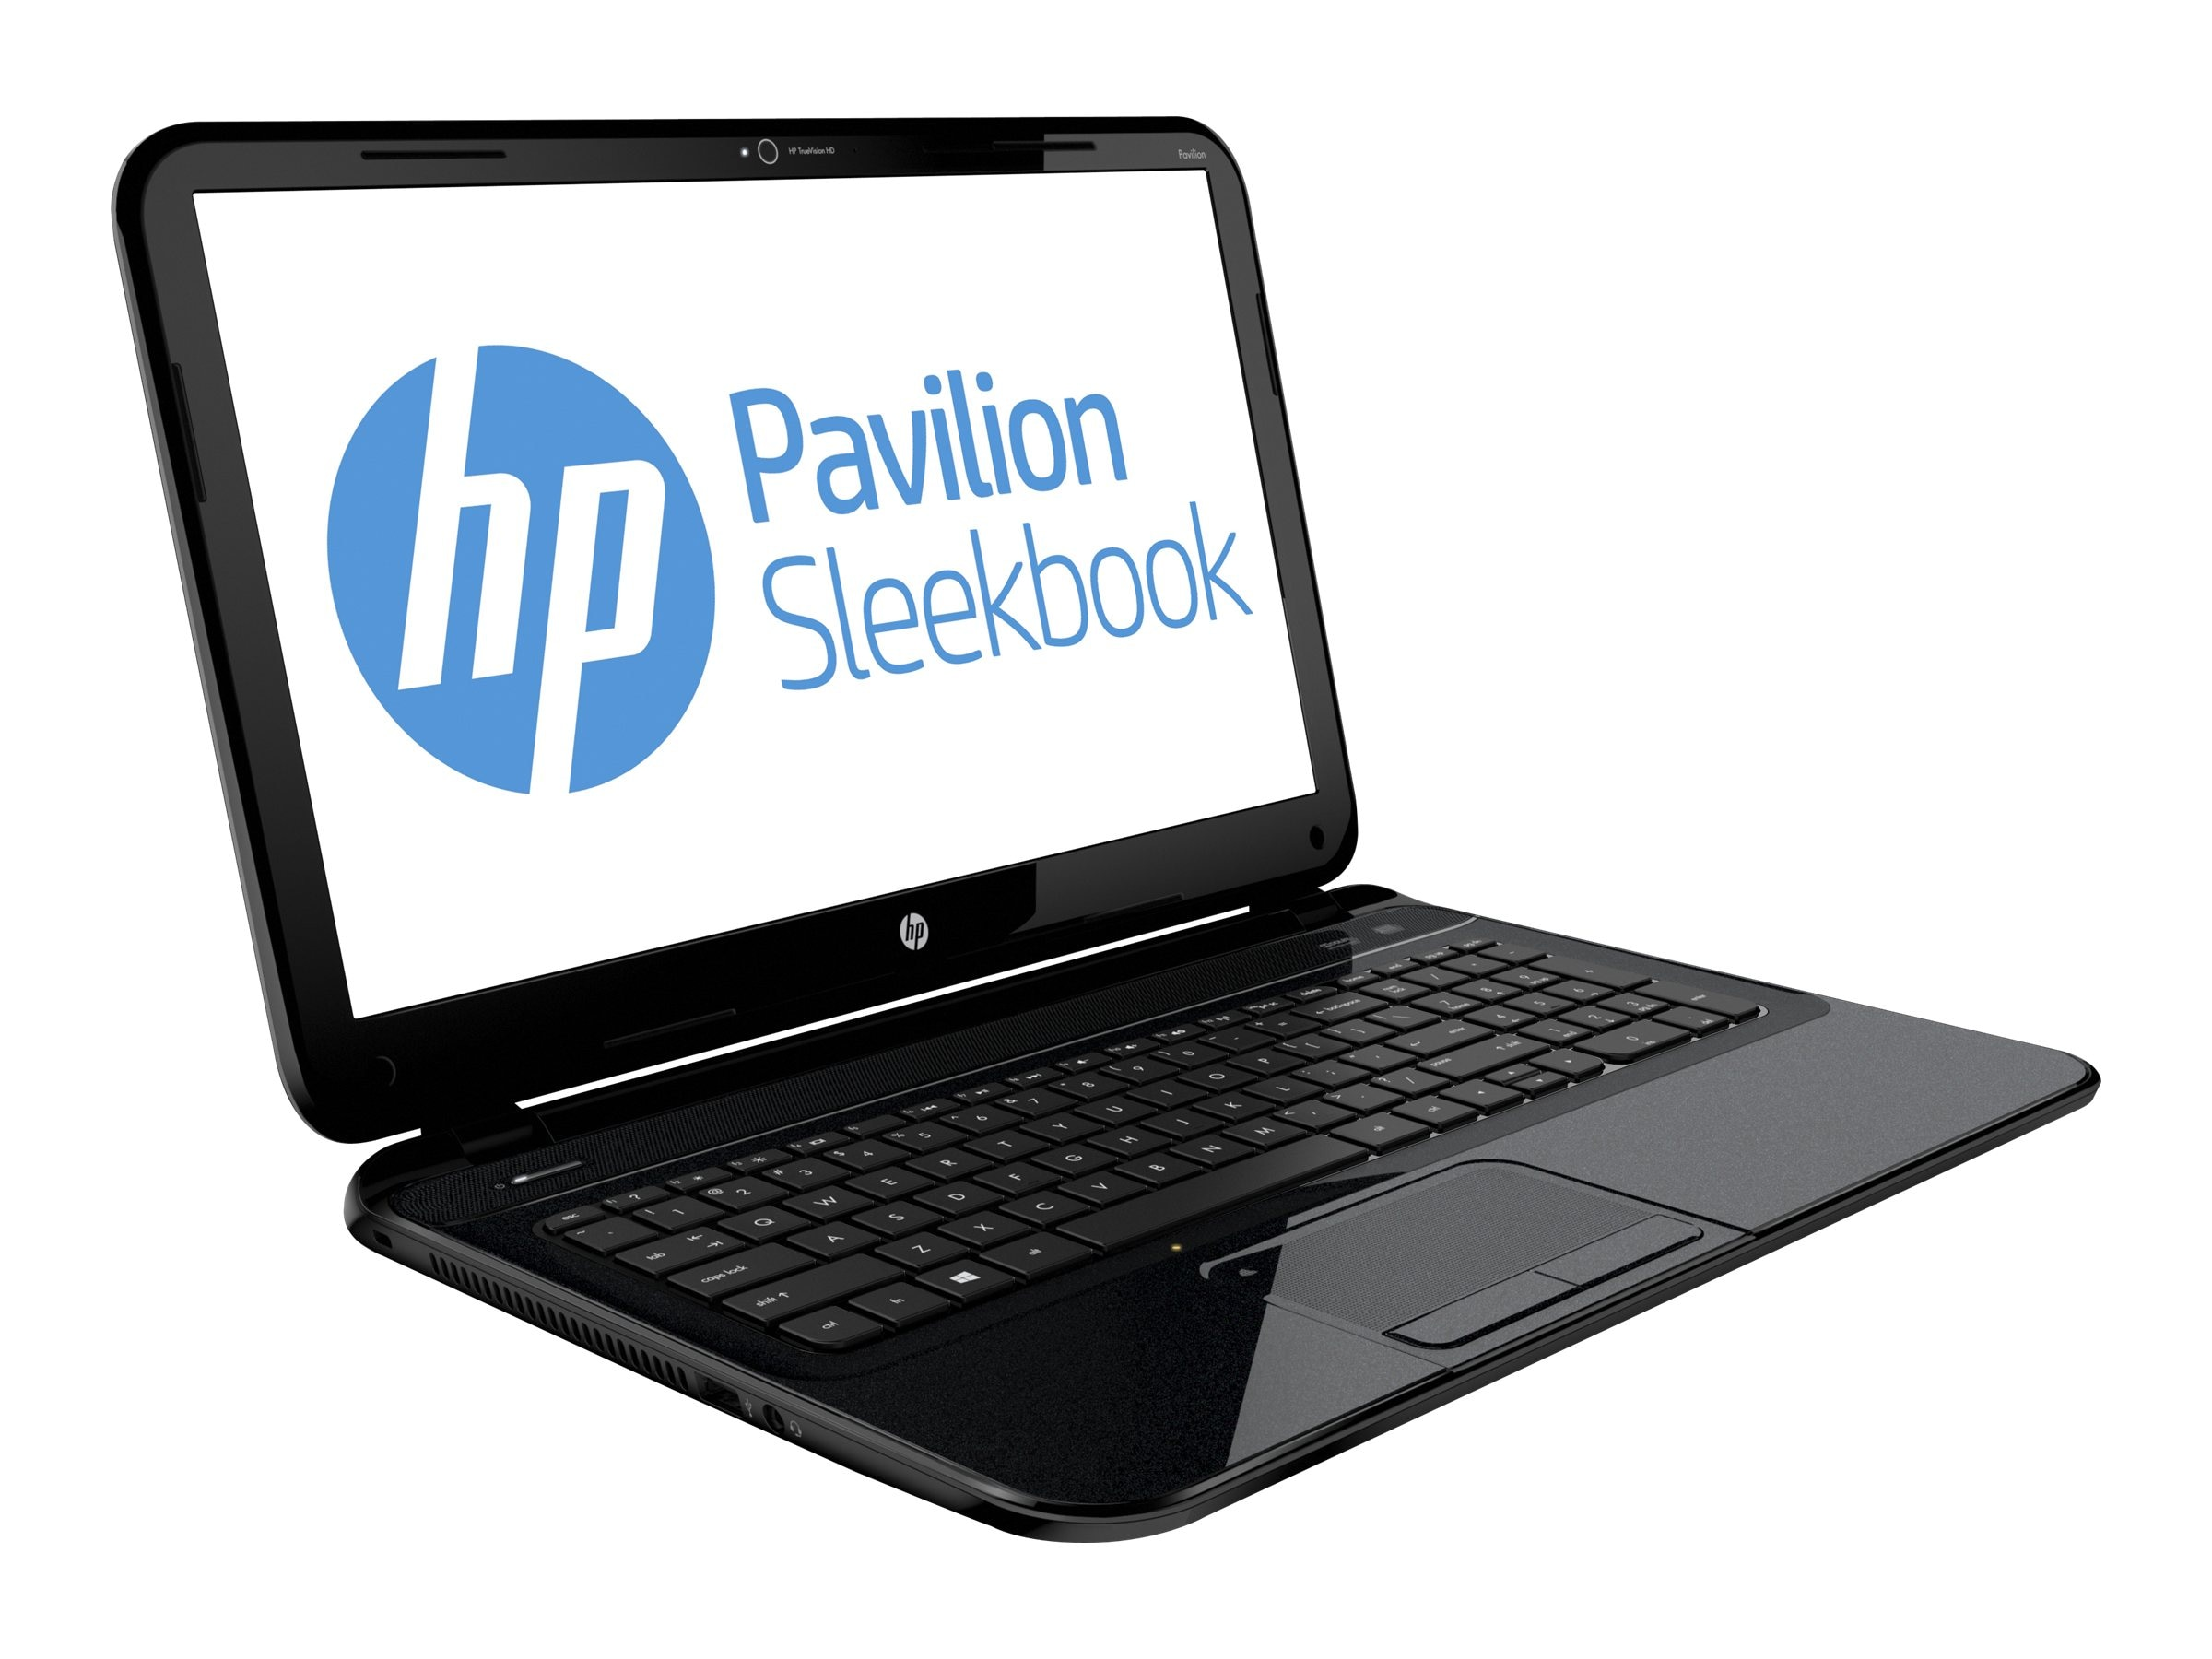 HP Pavilion Sleekbook 15-b140us 1.9GHz Core i3 15.6in display, D1D68UA#ABA